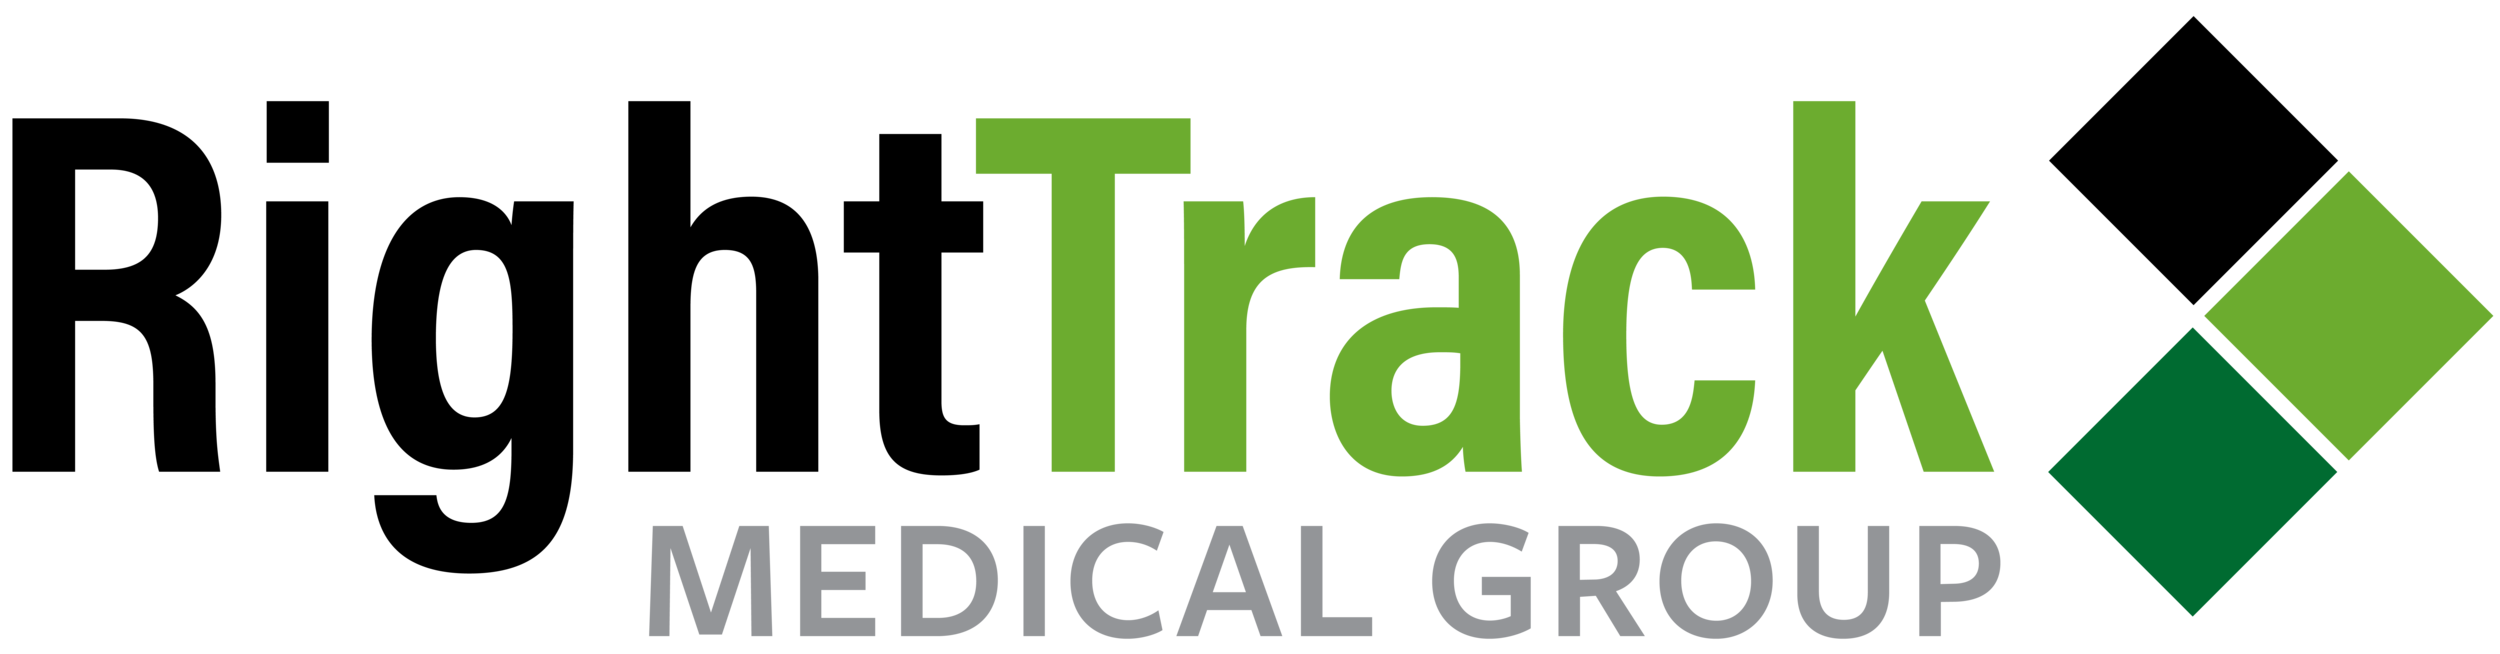 right-track-logo -color.png